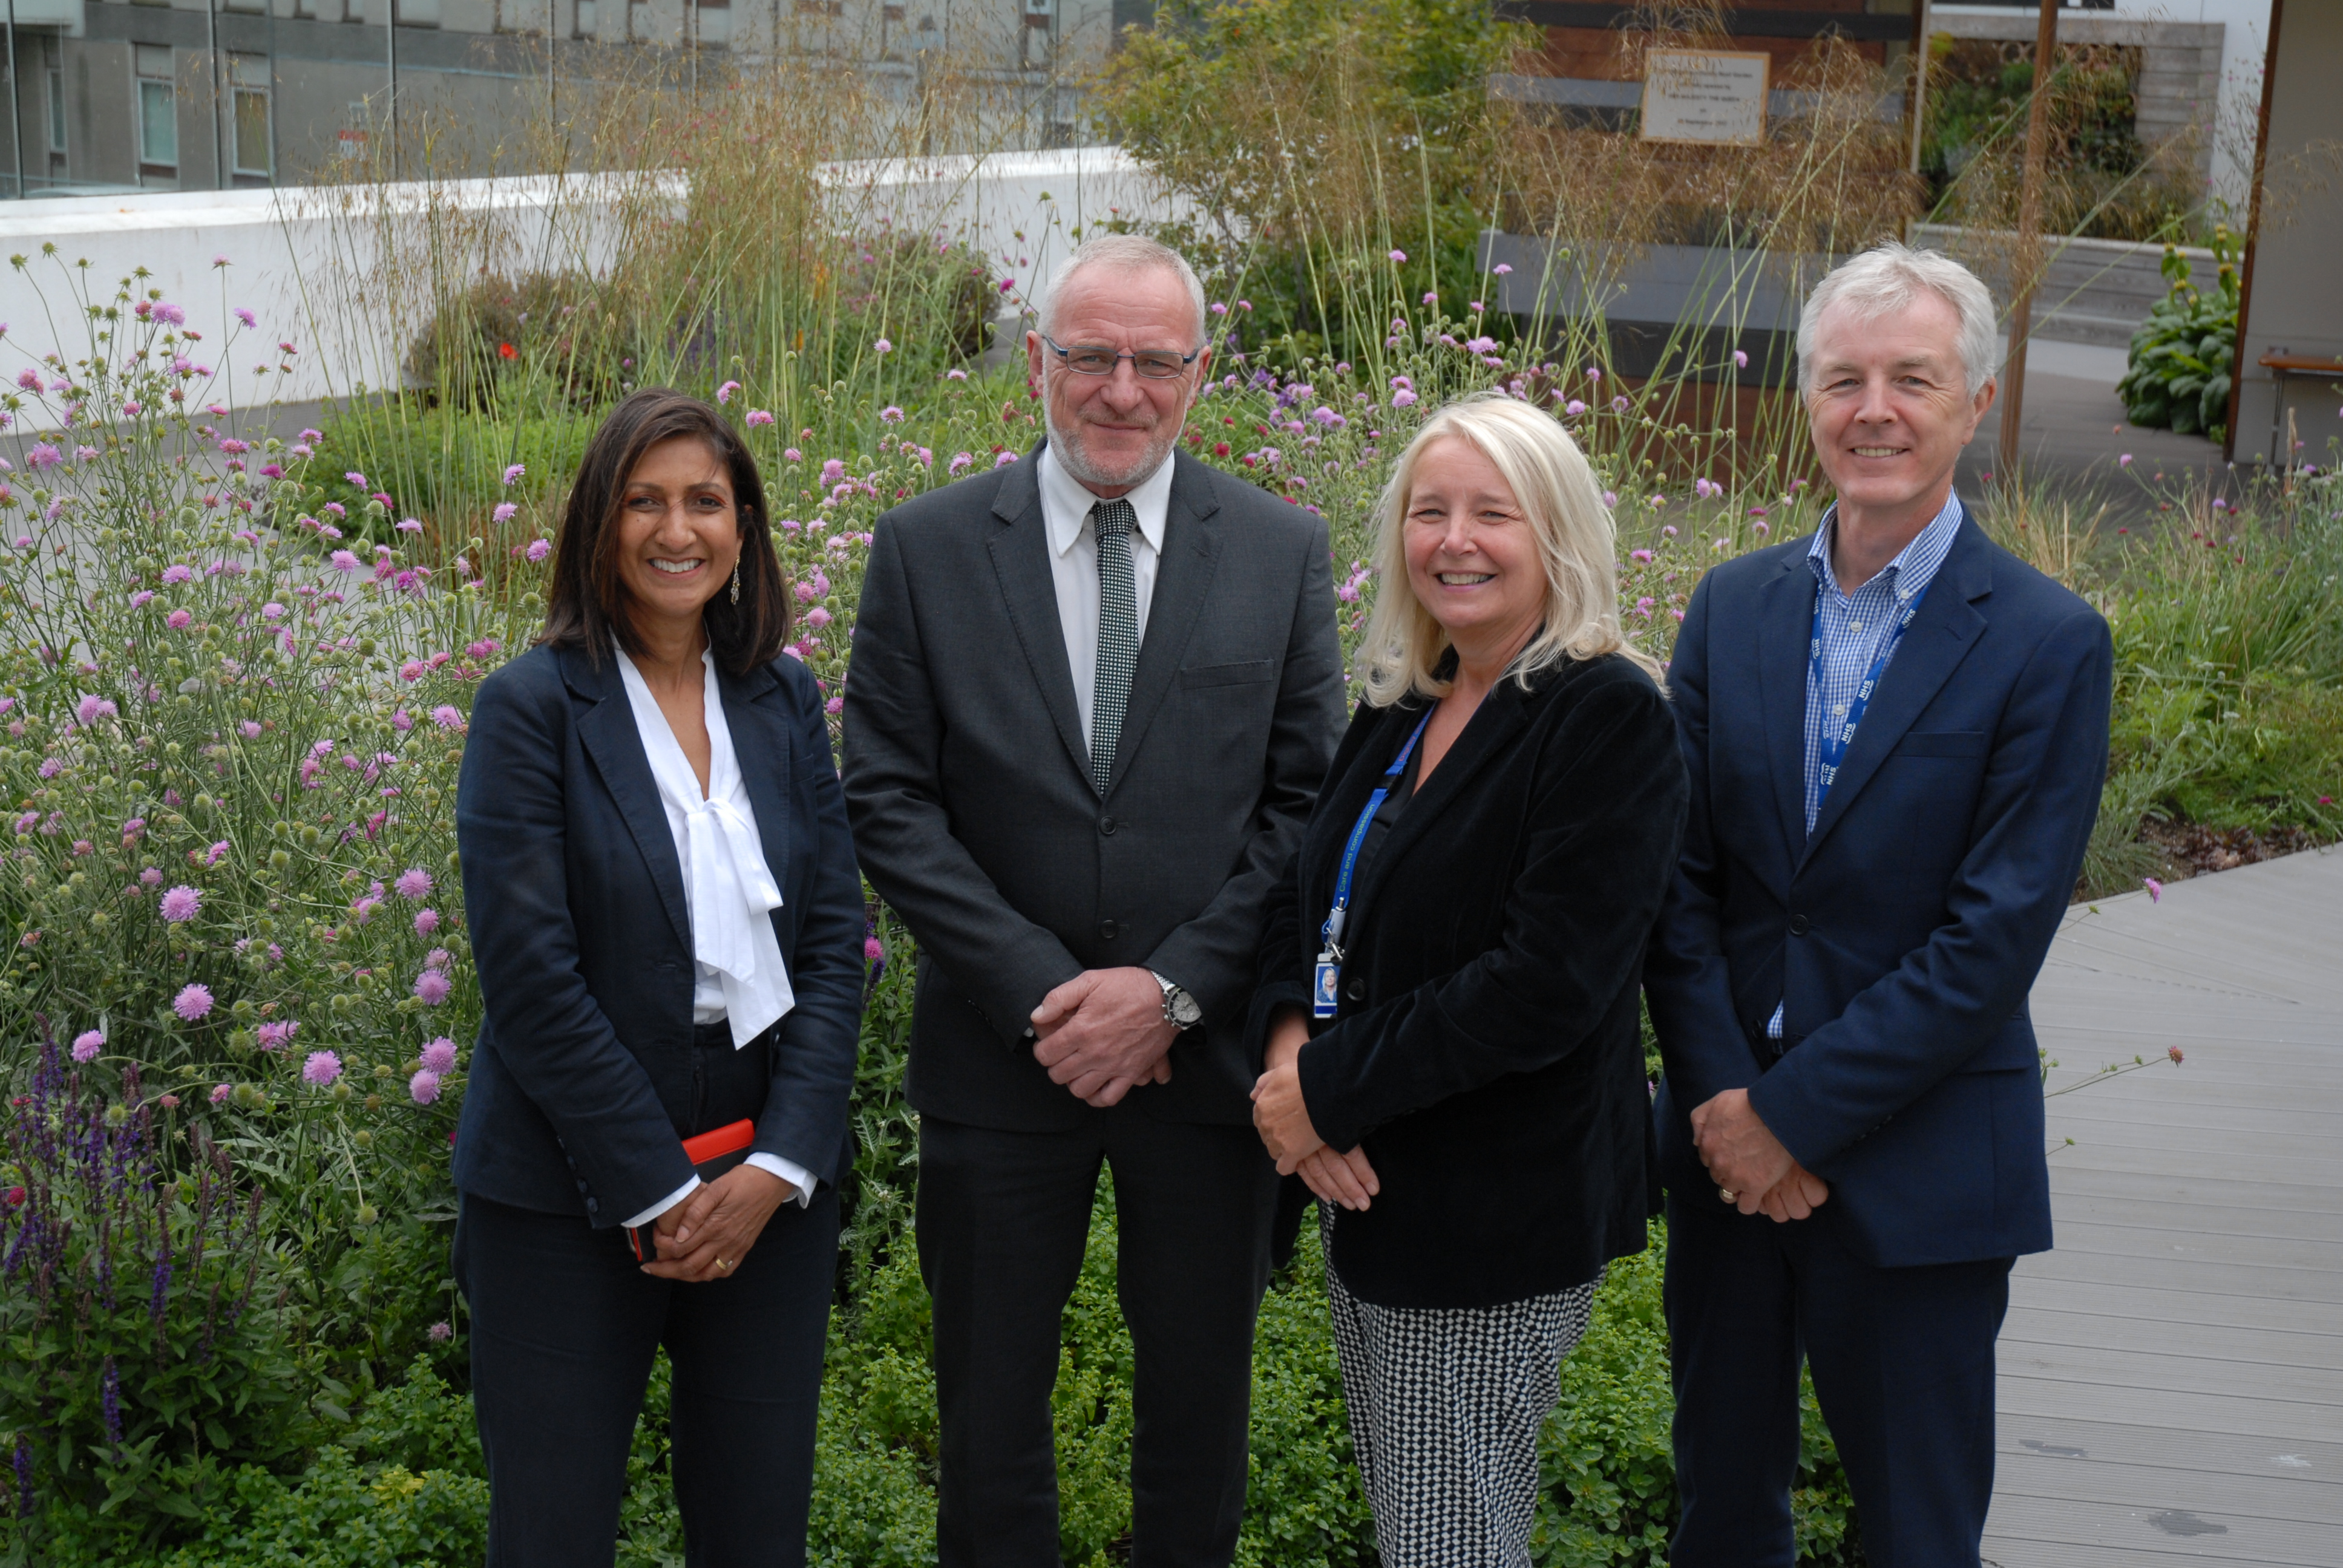 (l to r) Manju Patel, Programme Manager (Physical Infrastructure) at NHS Grampian, Graeme Lawtie, Operational Manager for Robertson, Louise McKessock, Clinical Redesign Manager at NHS Grampian and Graeme Smith, Director of Modernisation at NHS Grampian